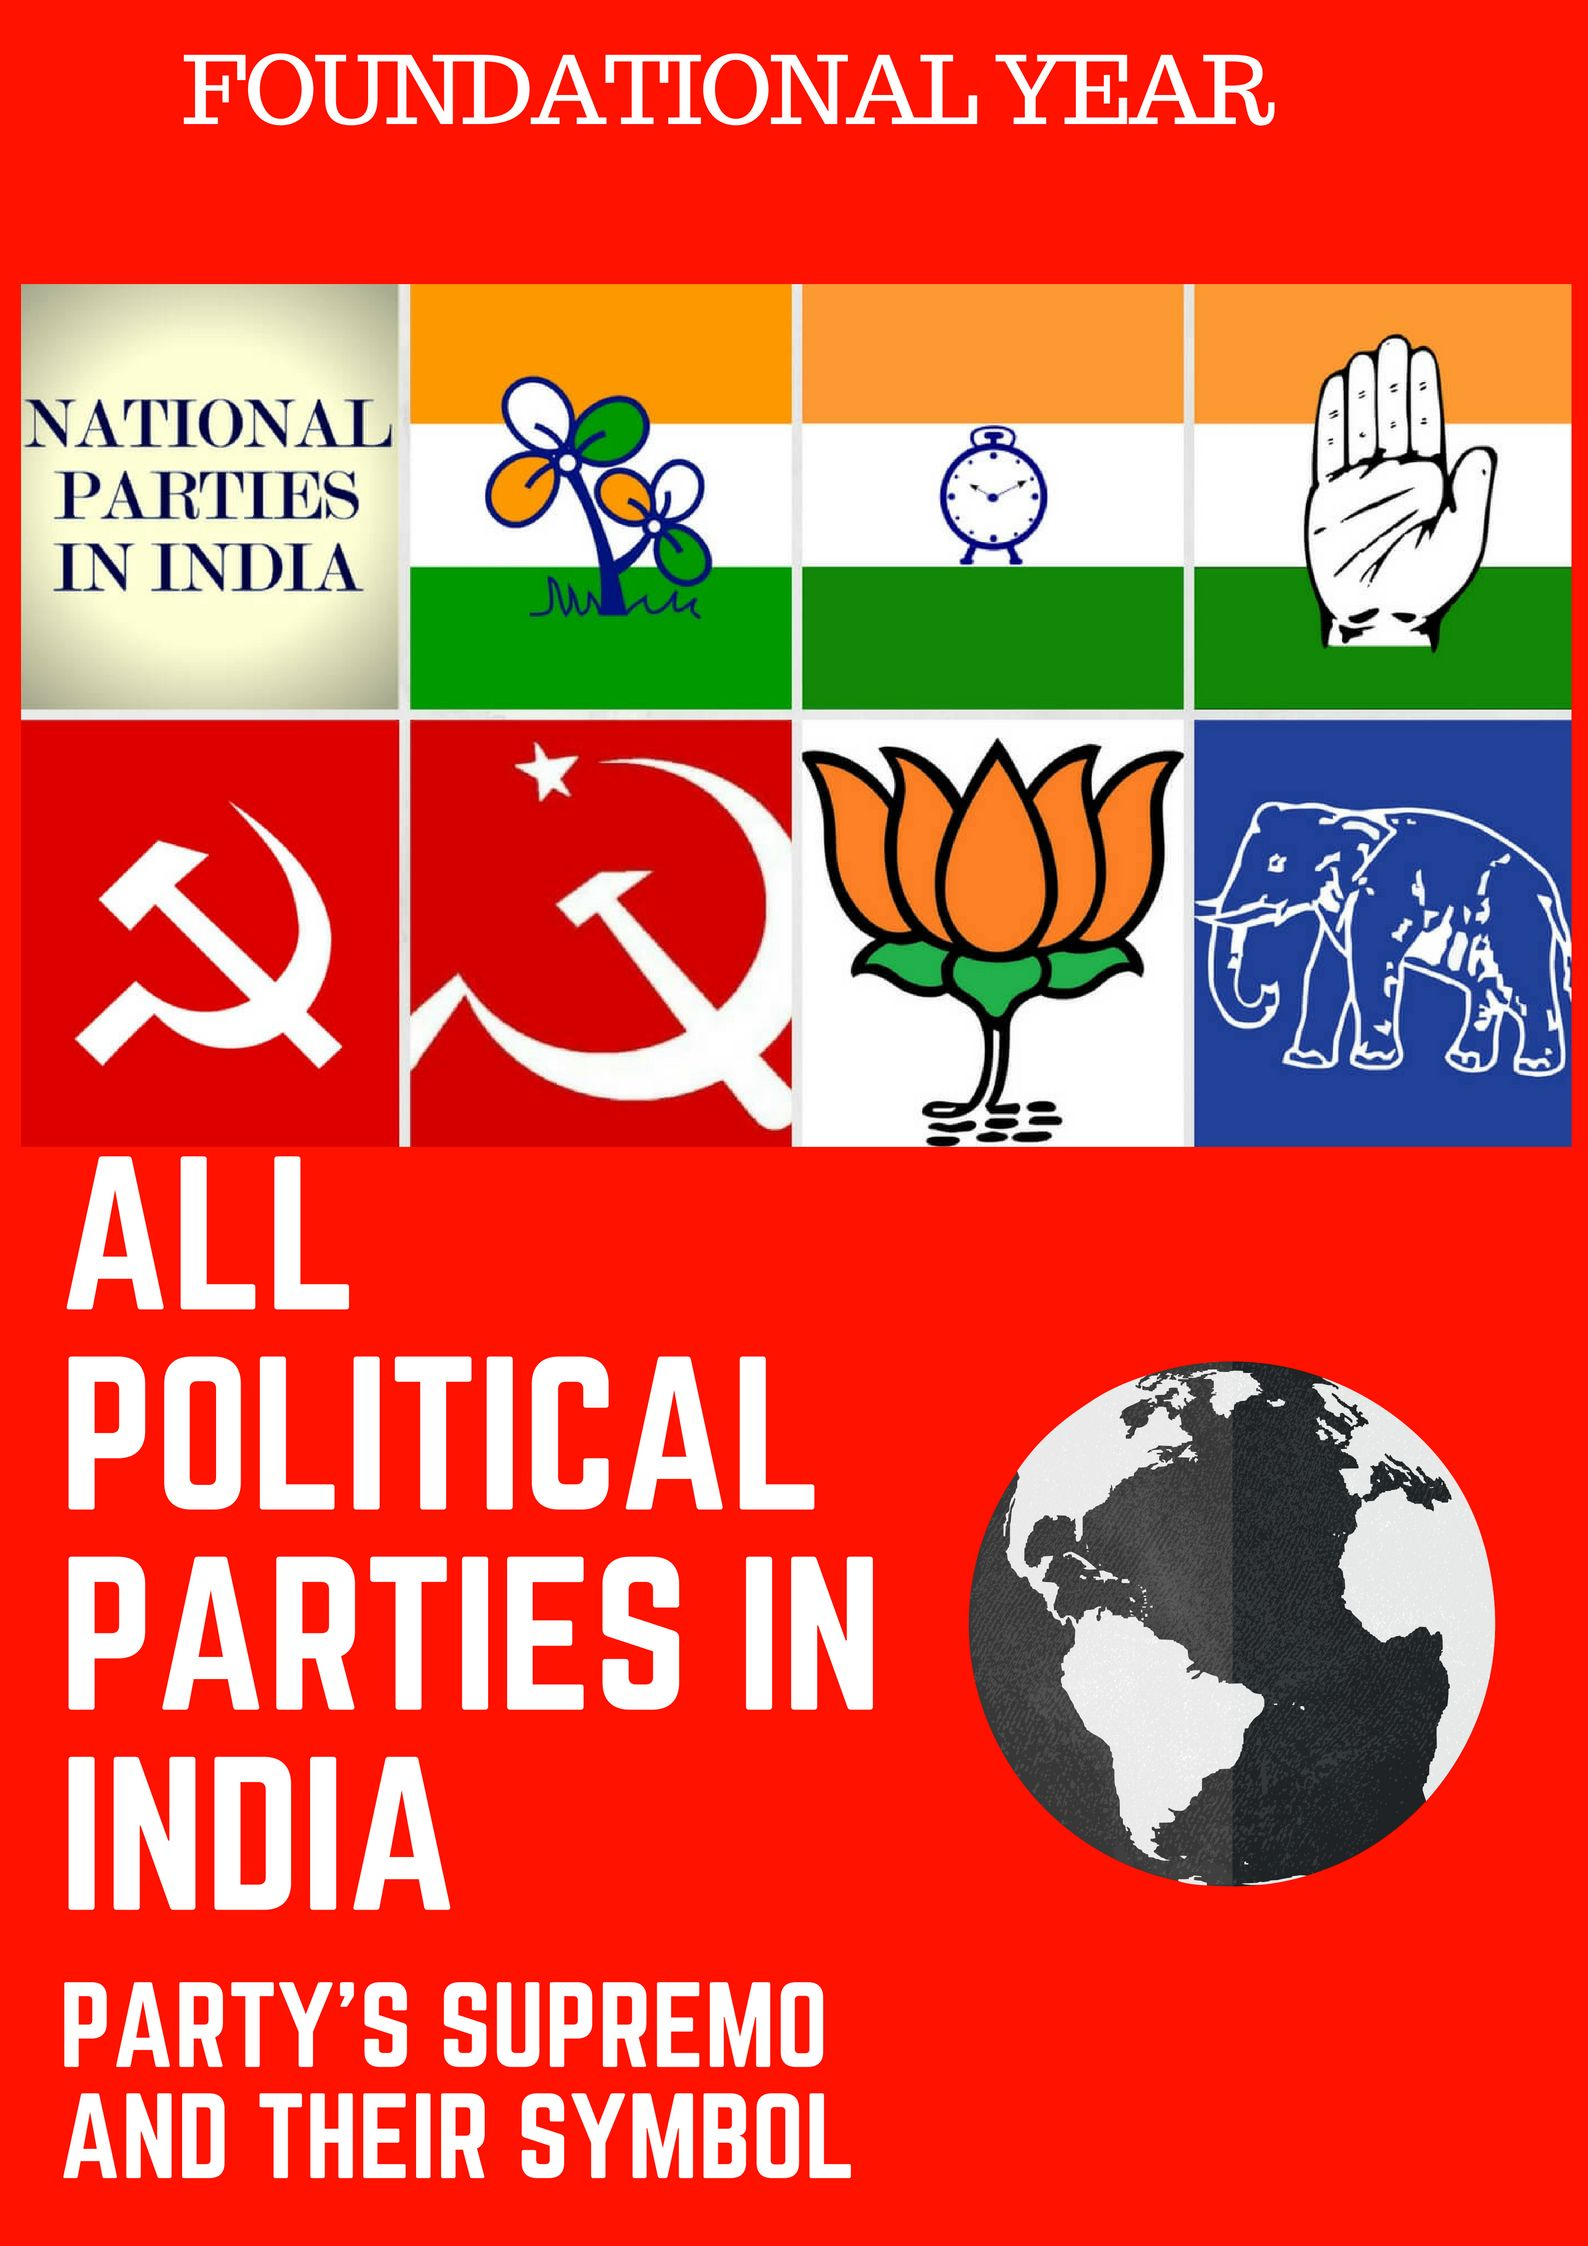 All Political Parties In India And Their Founder And Partysymbol